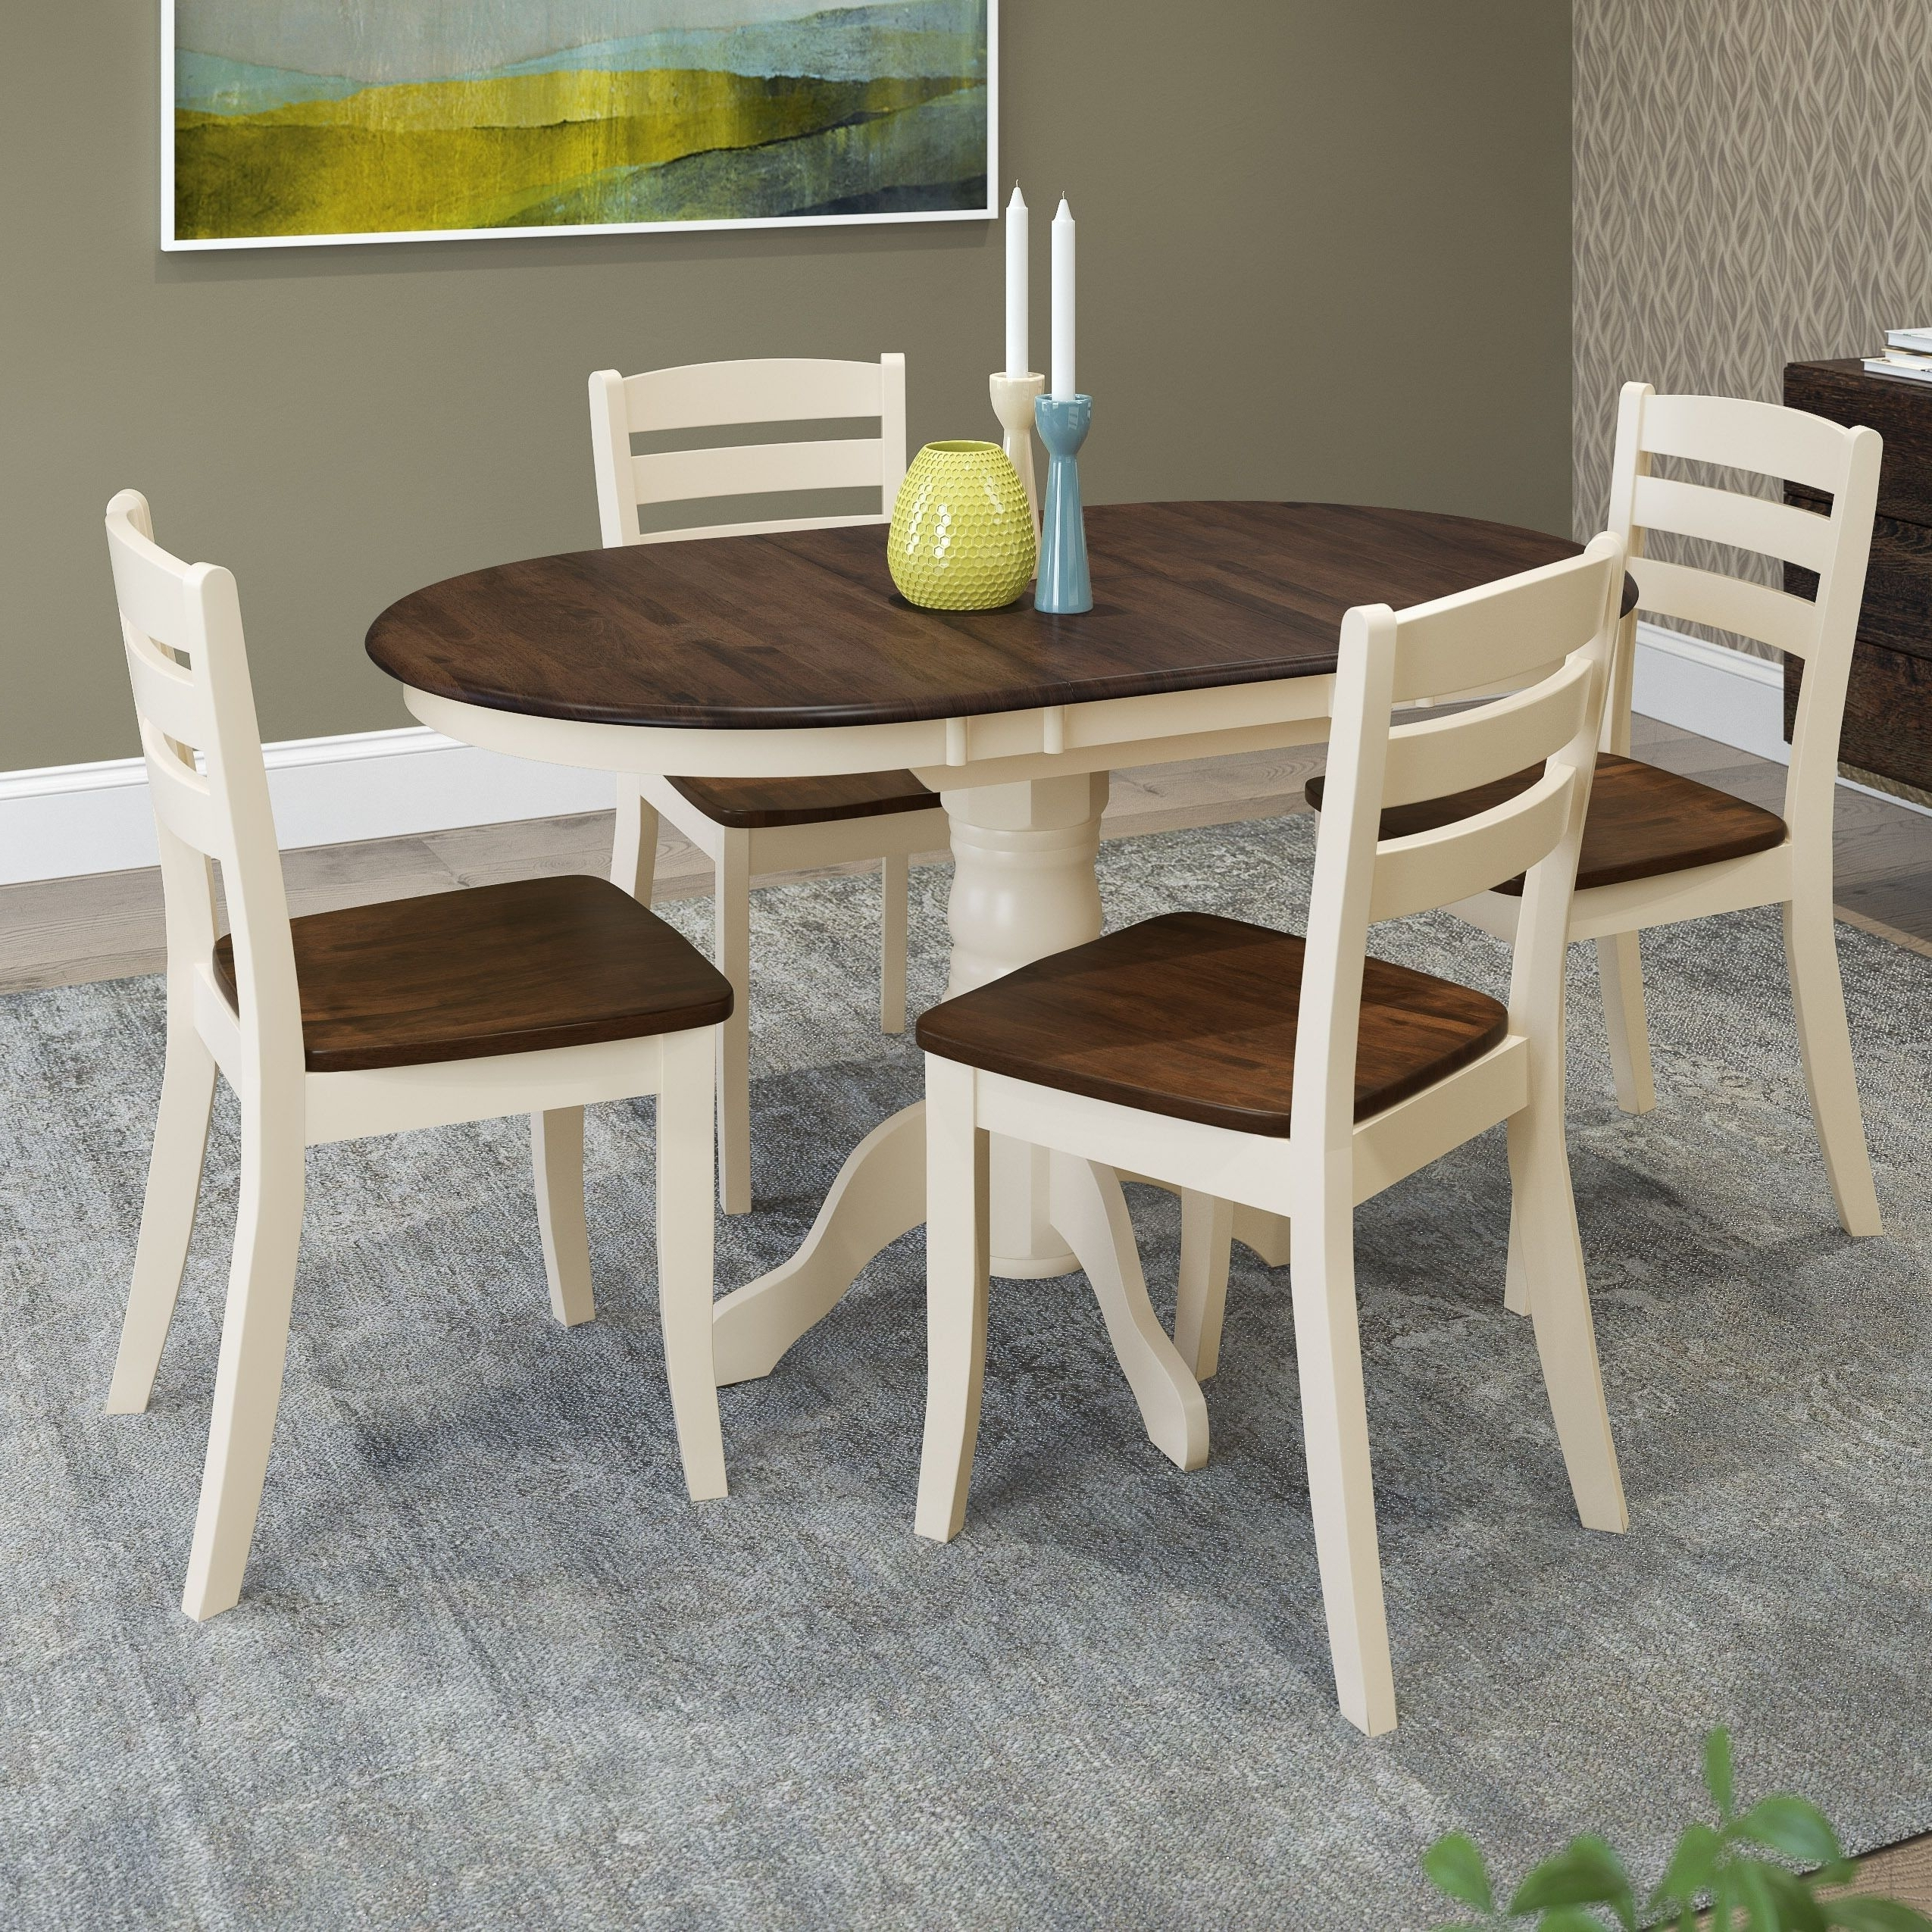 2018 Dark Solid Wood Dining Tables Intended For Corliving Dillon 5 Piece Extendable Dark Brown And Cream Solid Wood (View 21 of 25)